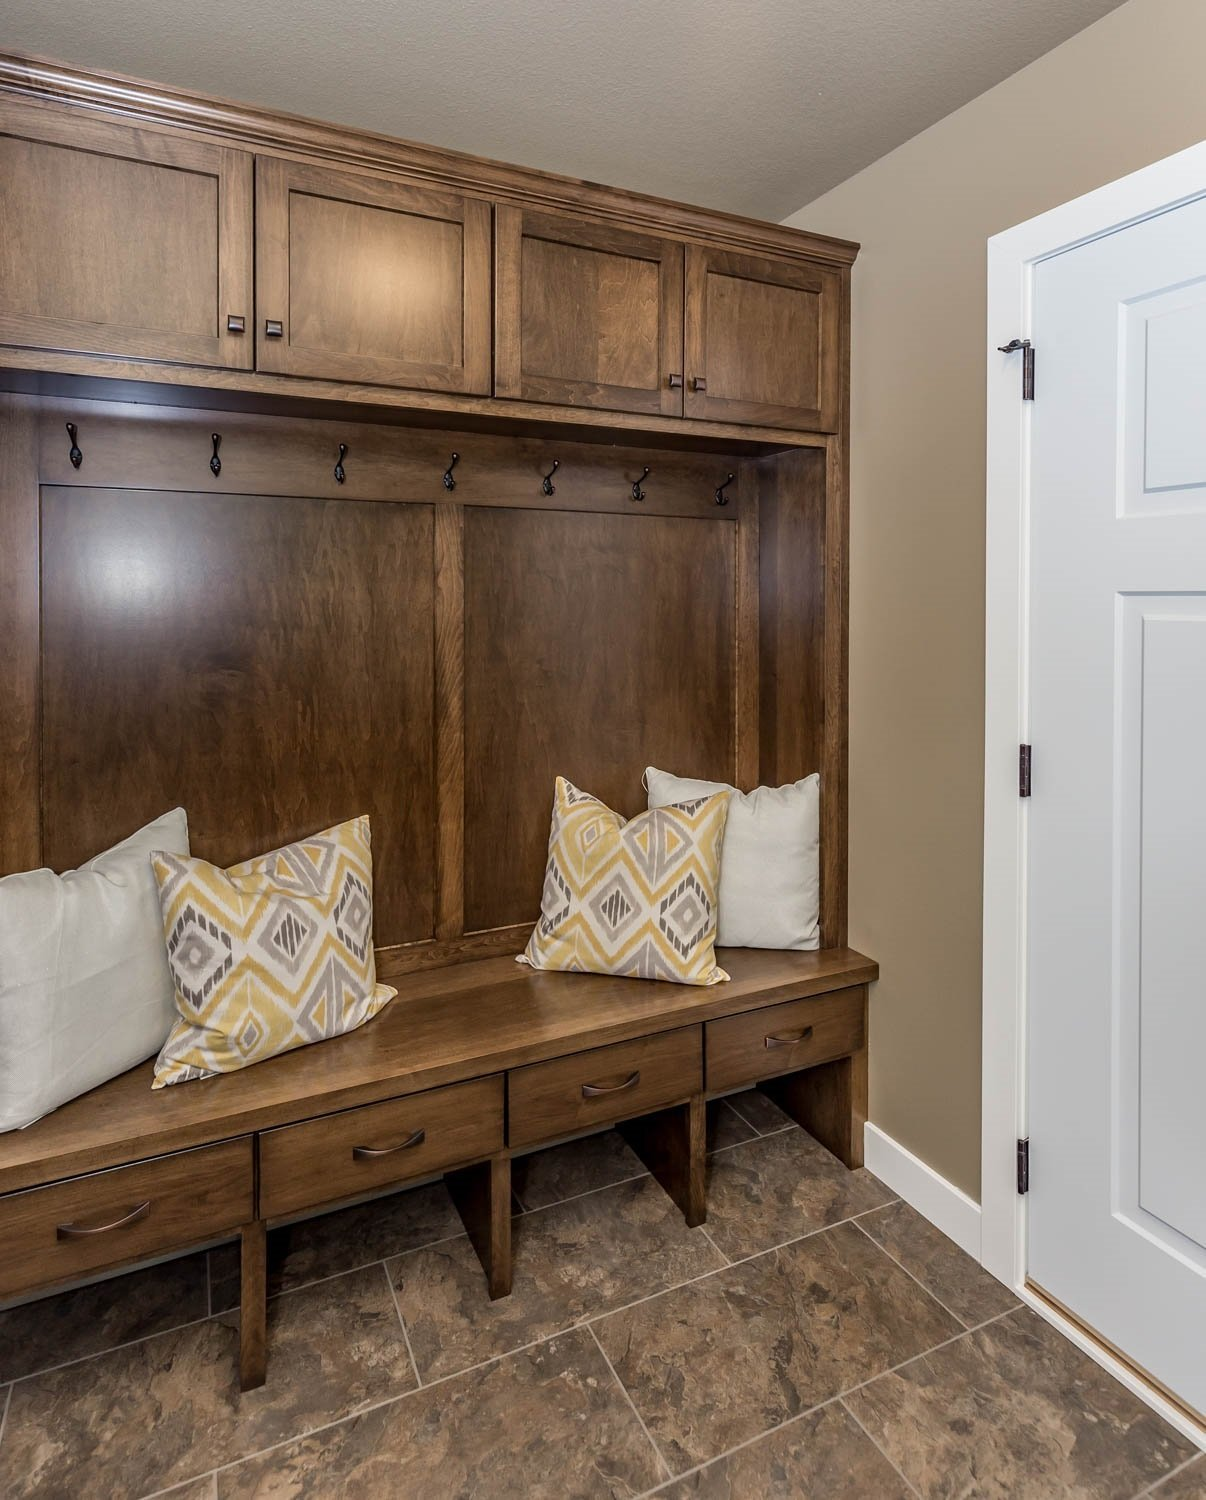 Cabinet and pillows